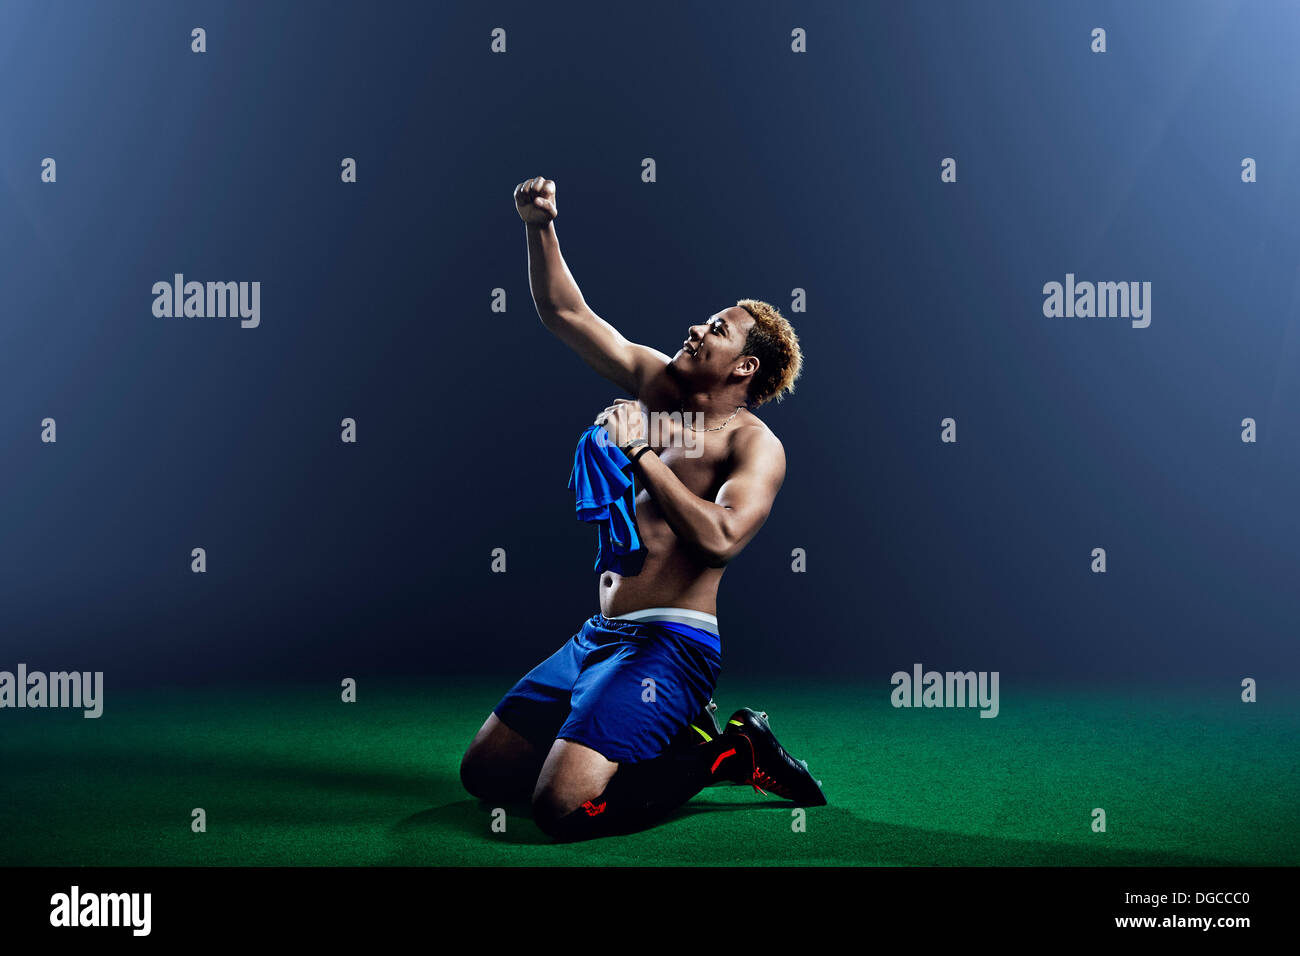 Male soccer player kneeling with arm raised - Stock Image